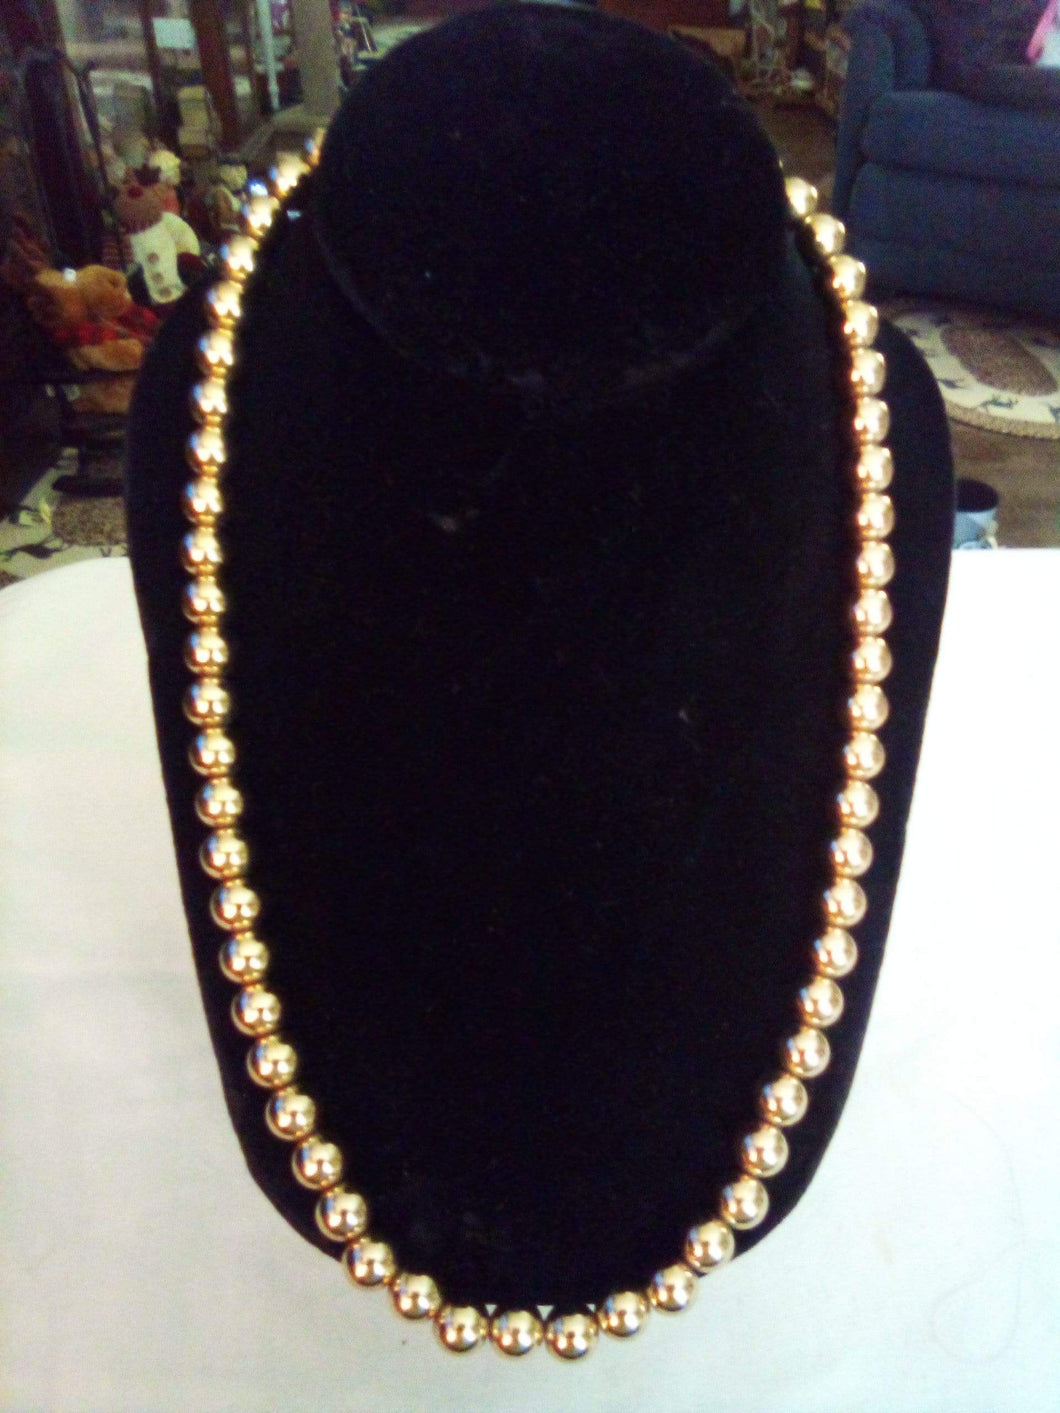 Monet marked gold tone beaded necklace - B&P'sringsnthings